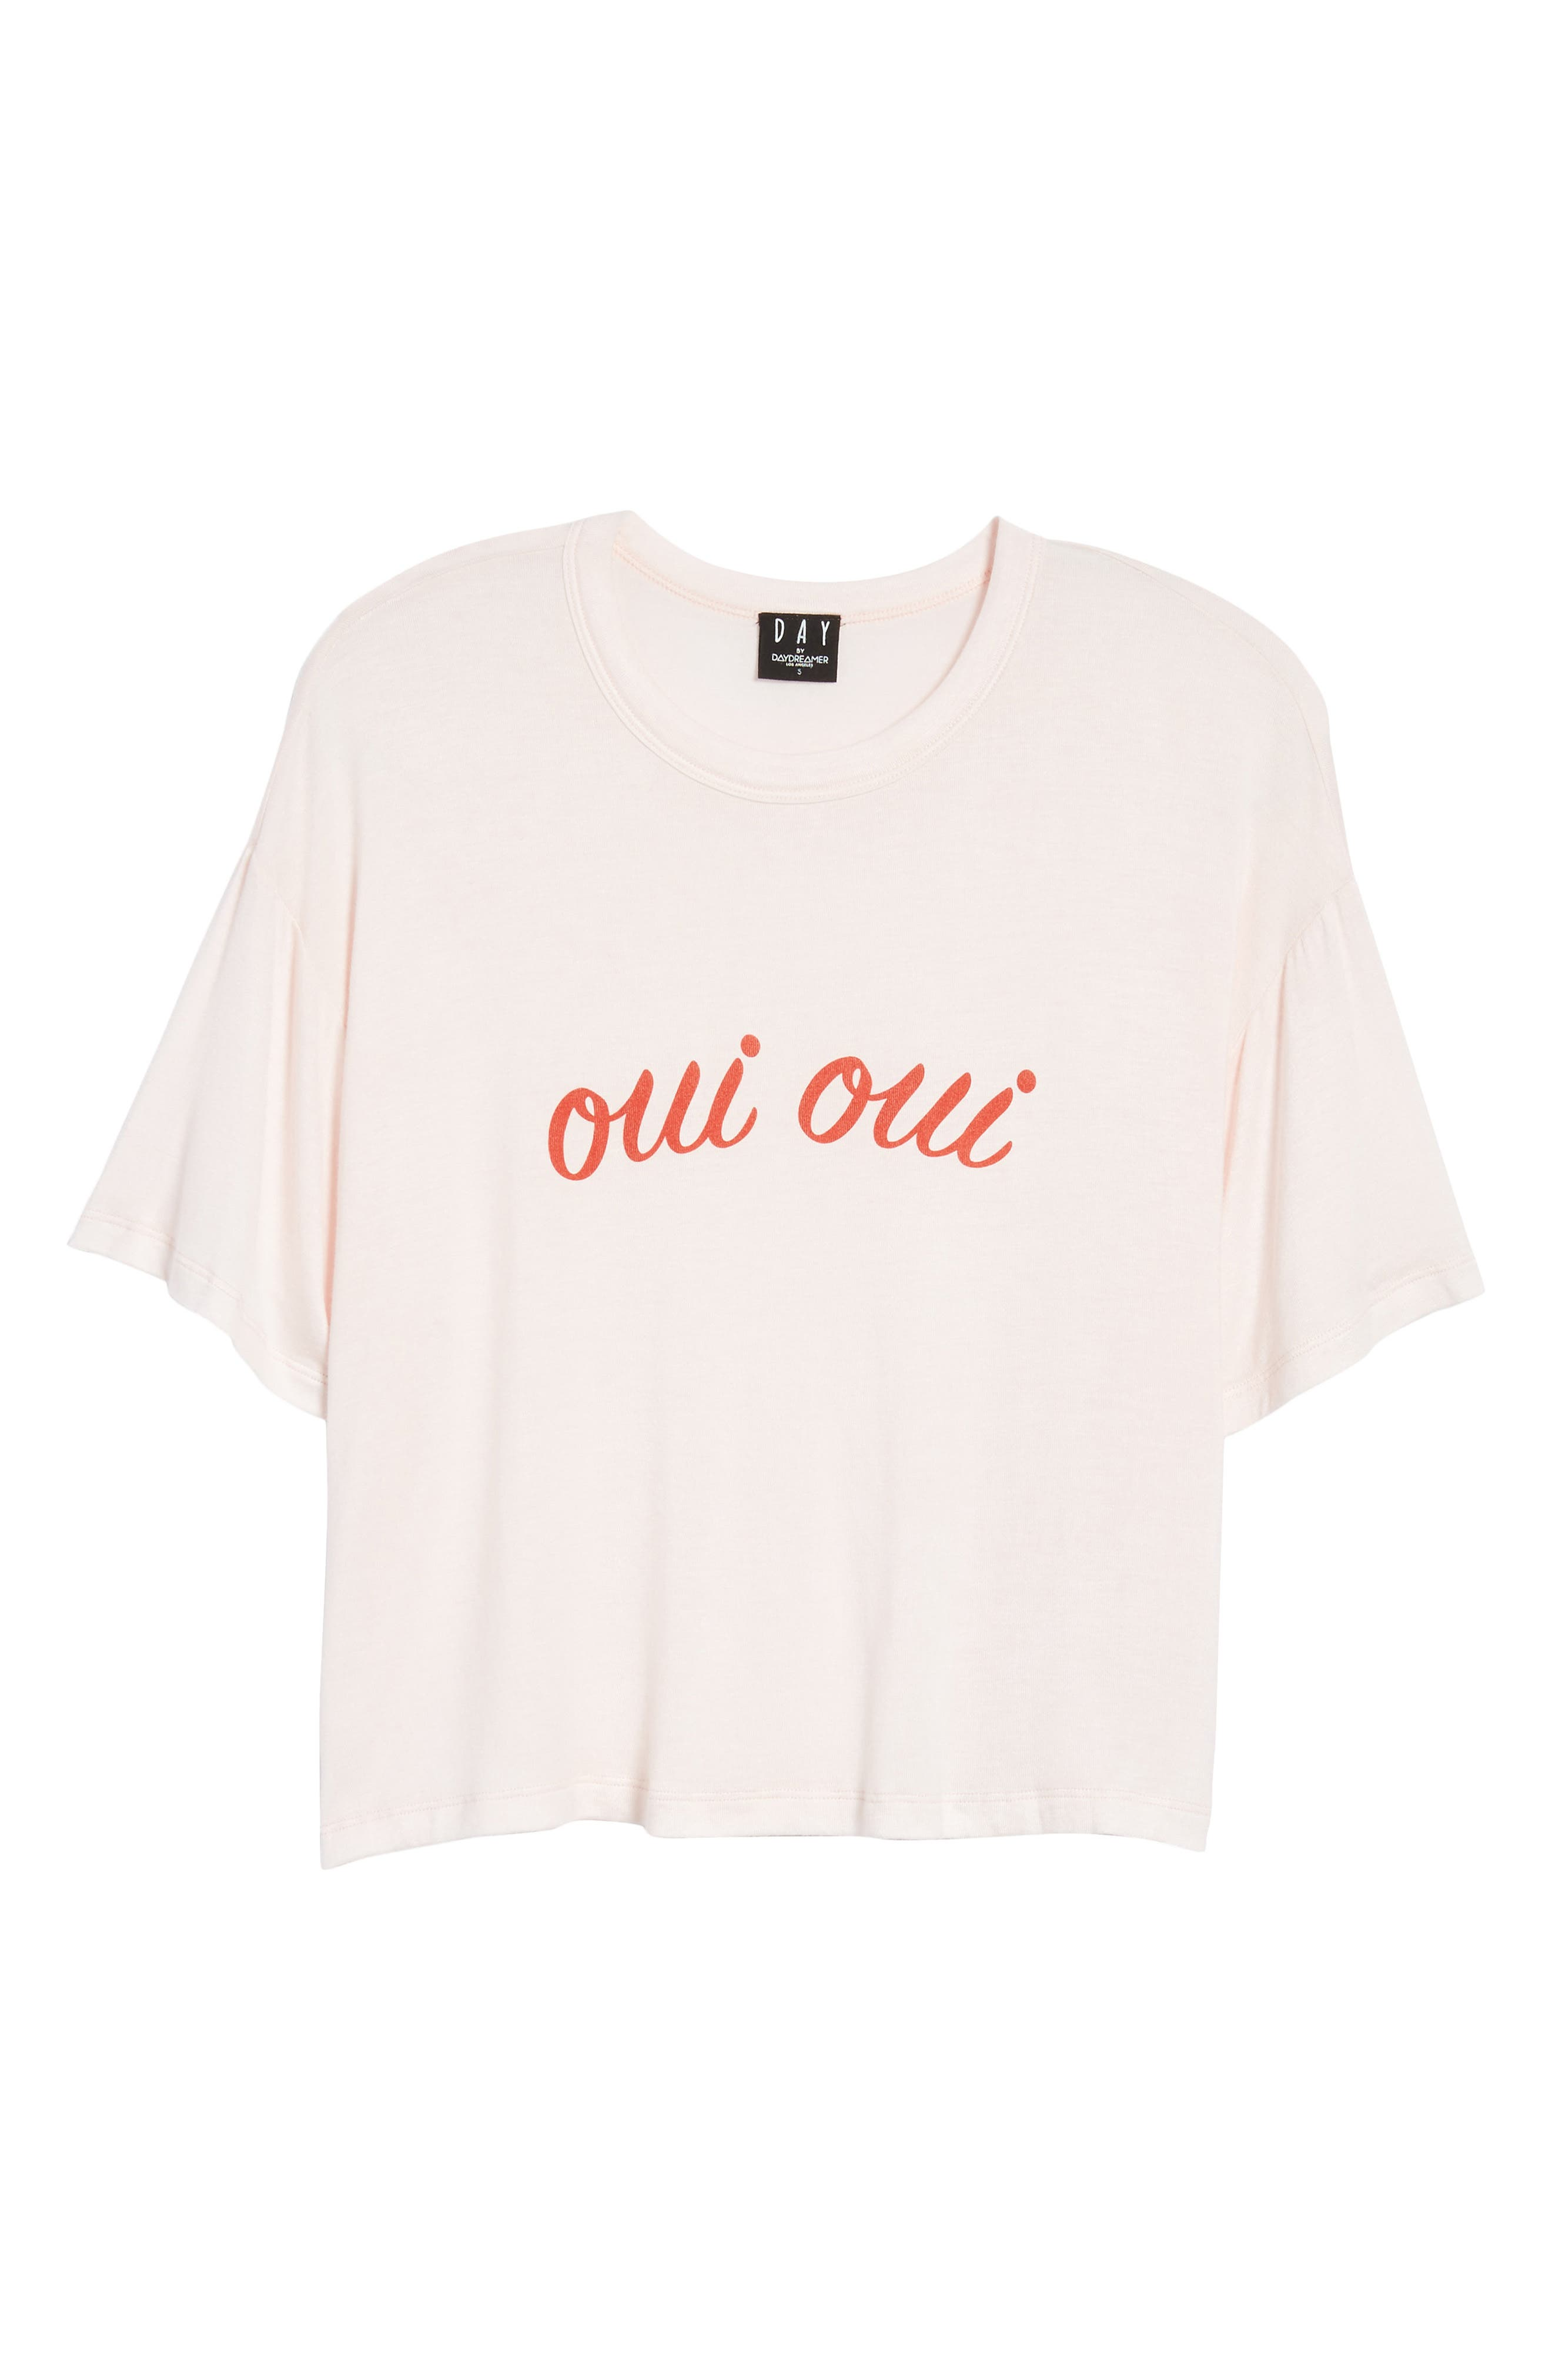 Oui Oui Graphic Tee,                             Alternate thumbnail 6, color,                             Light Pink